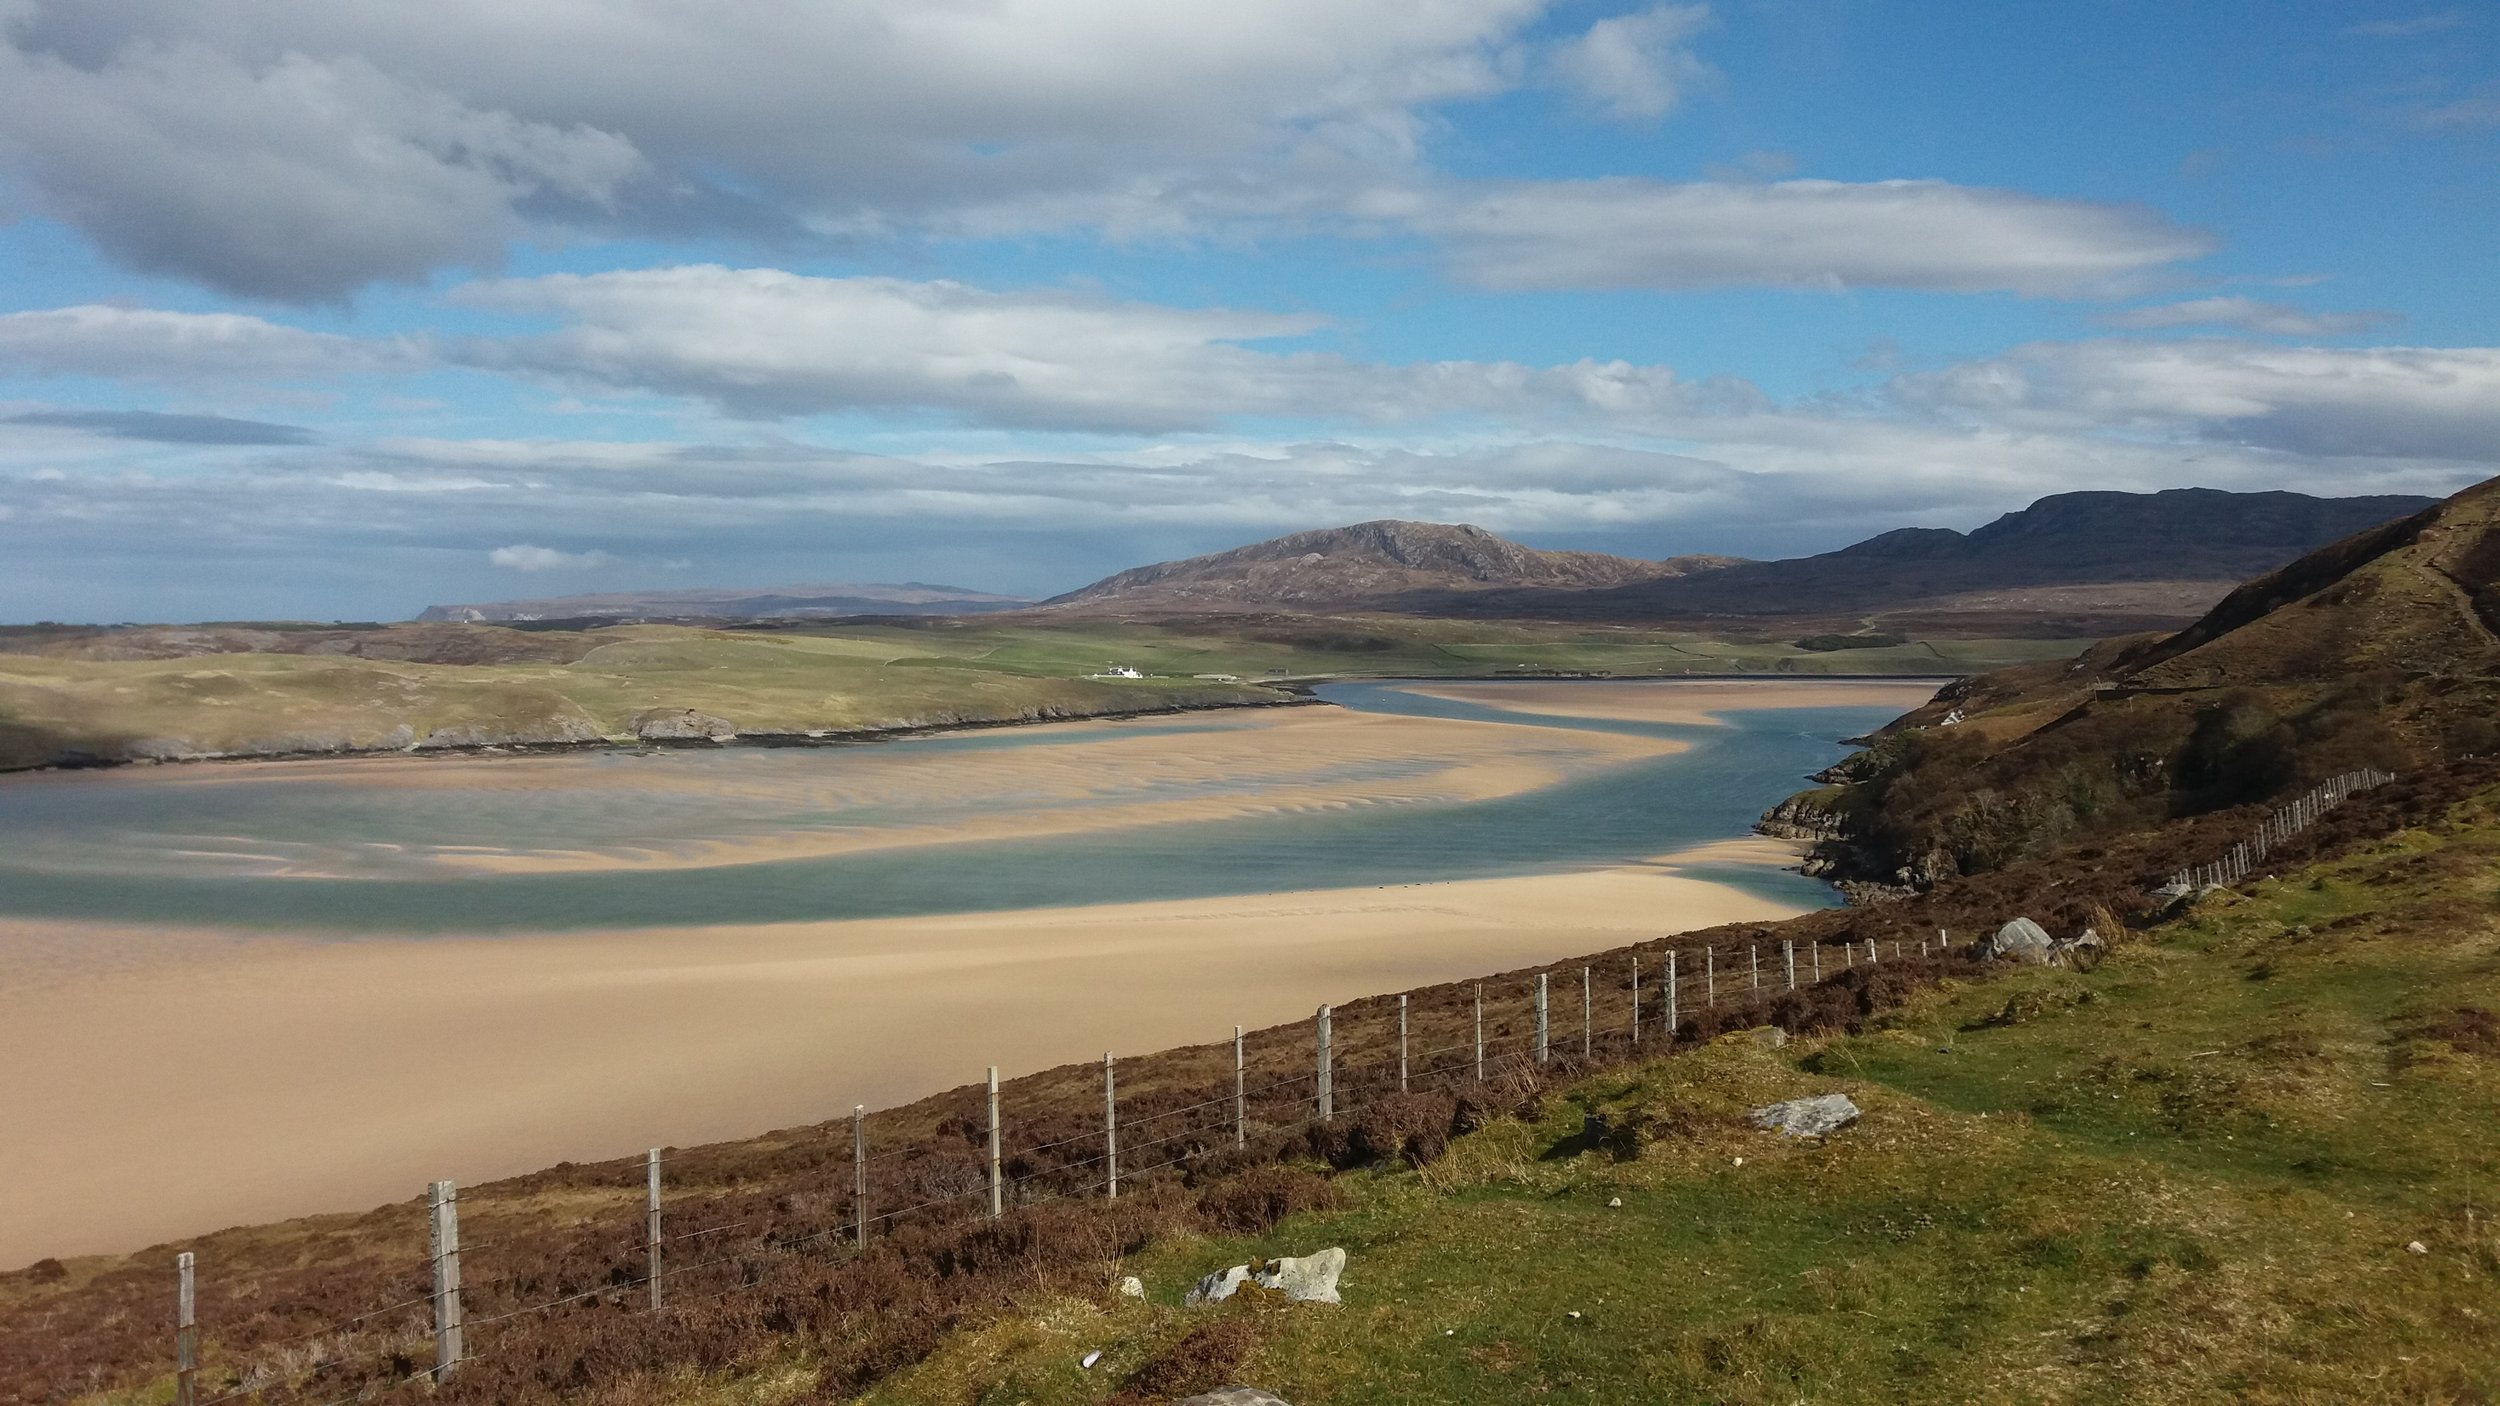 The stunning scenery of the Kyle of Durness, northwest Scotland